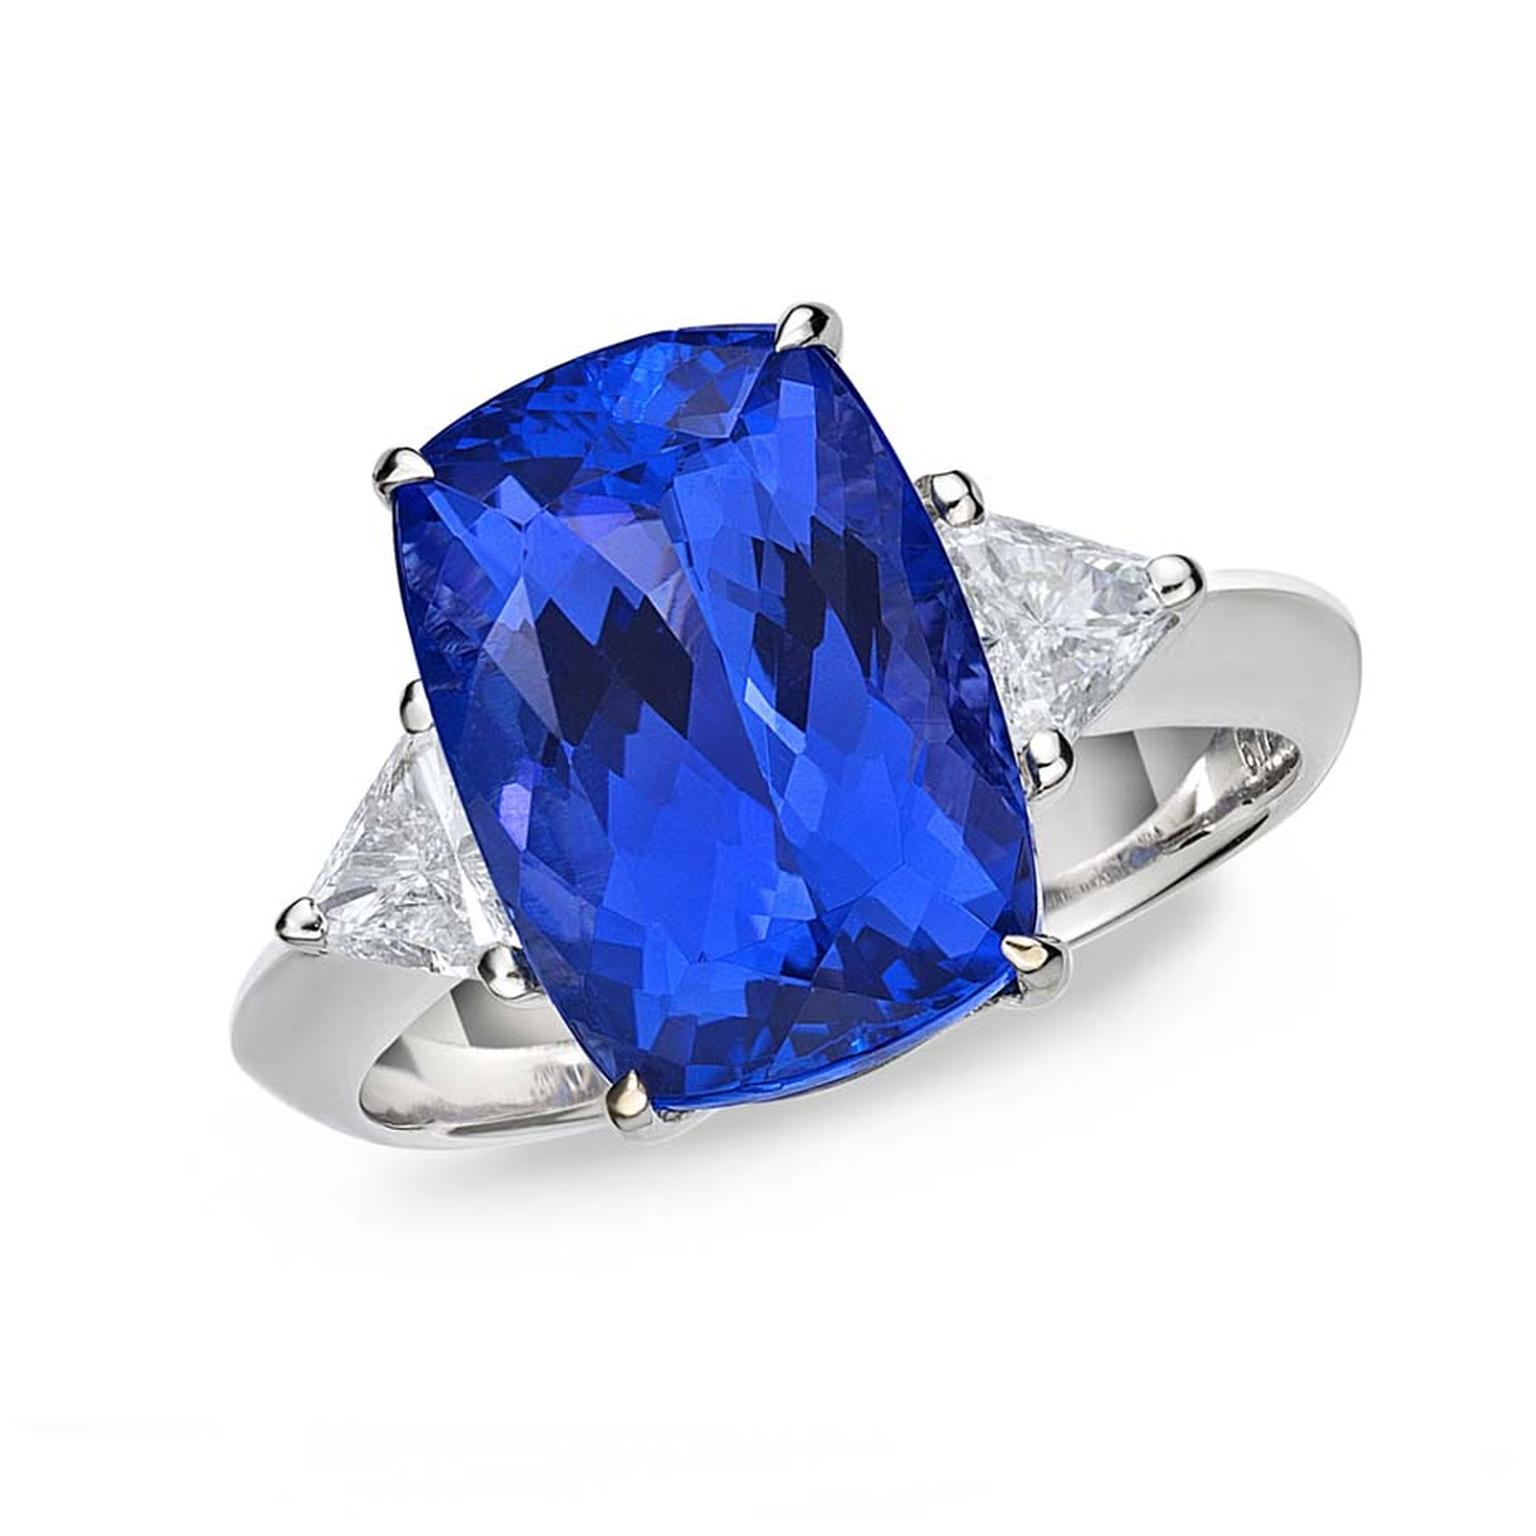 dsc tanzanite jewelry ring rings a through journey cut art trillion shop